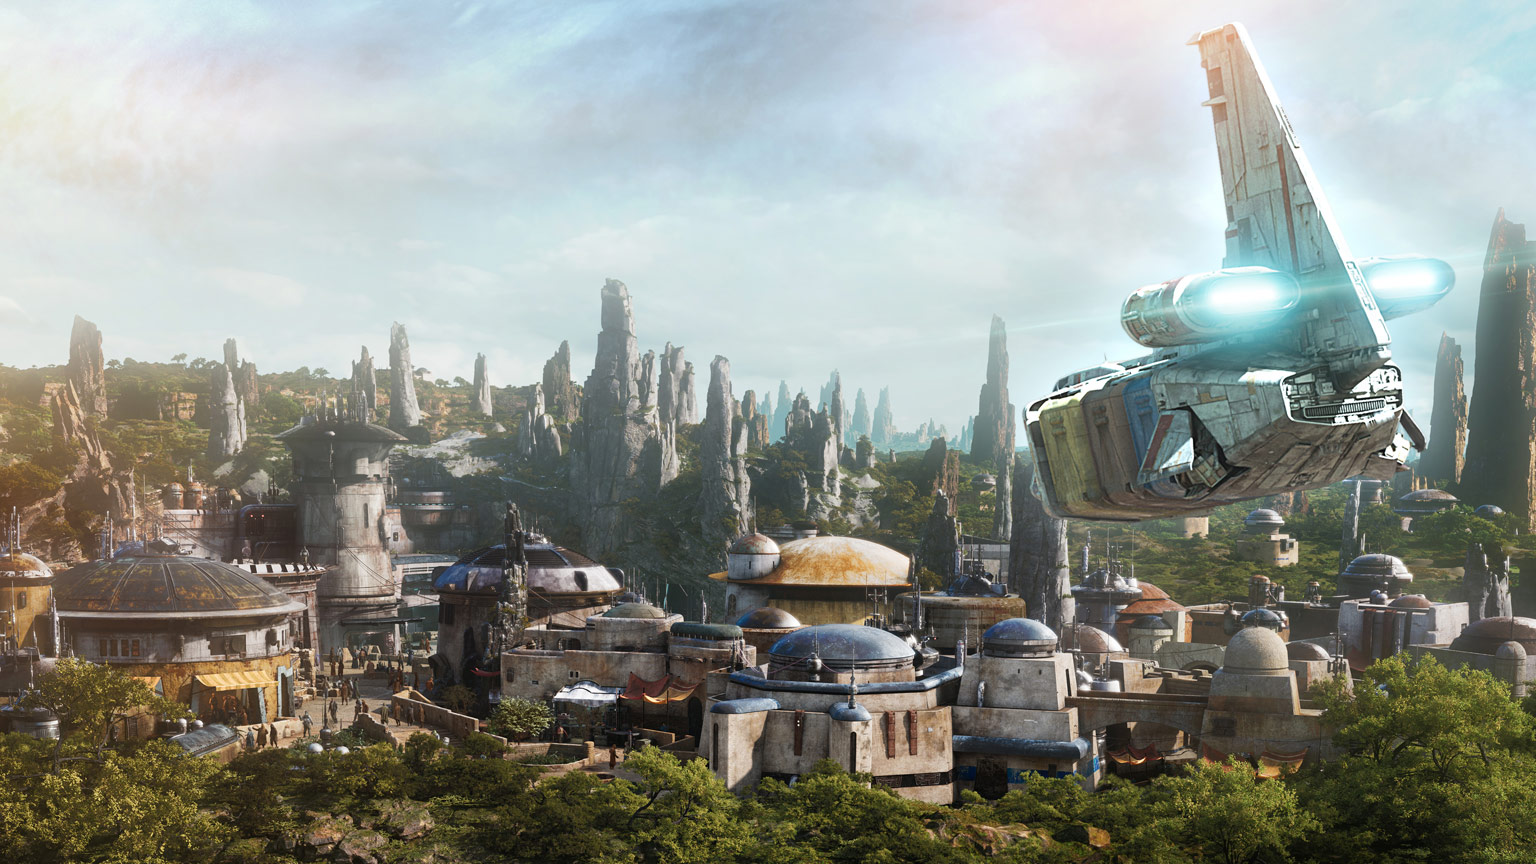 Batuu - Star Wars: Galaxy's Edge